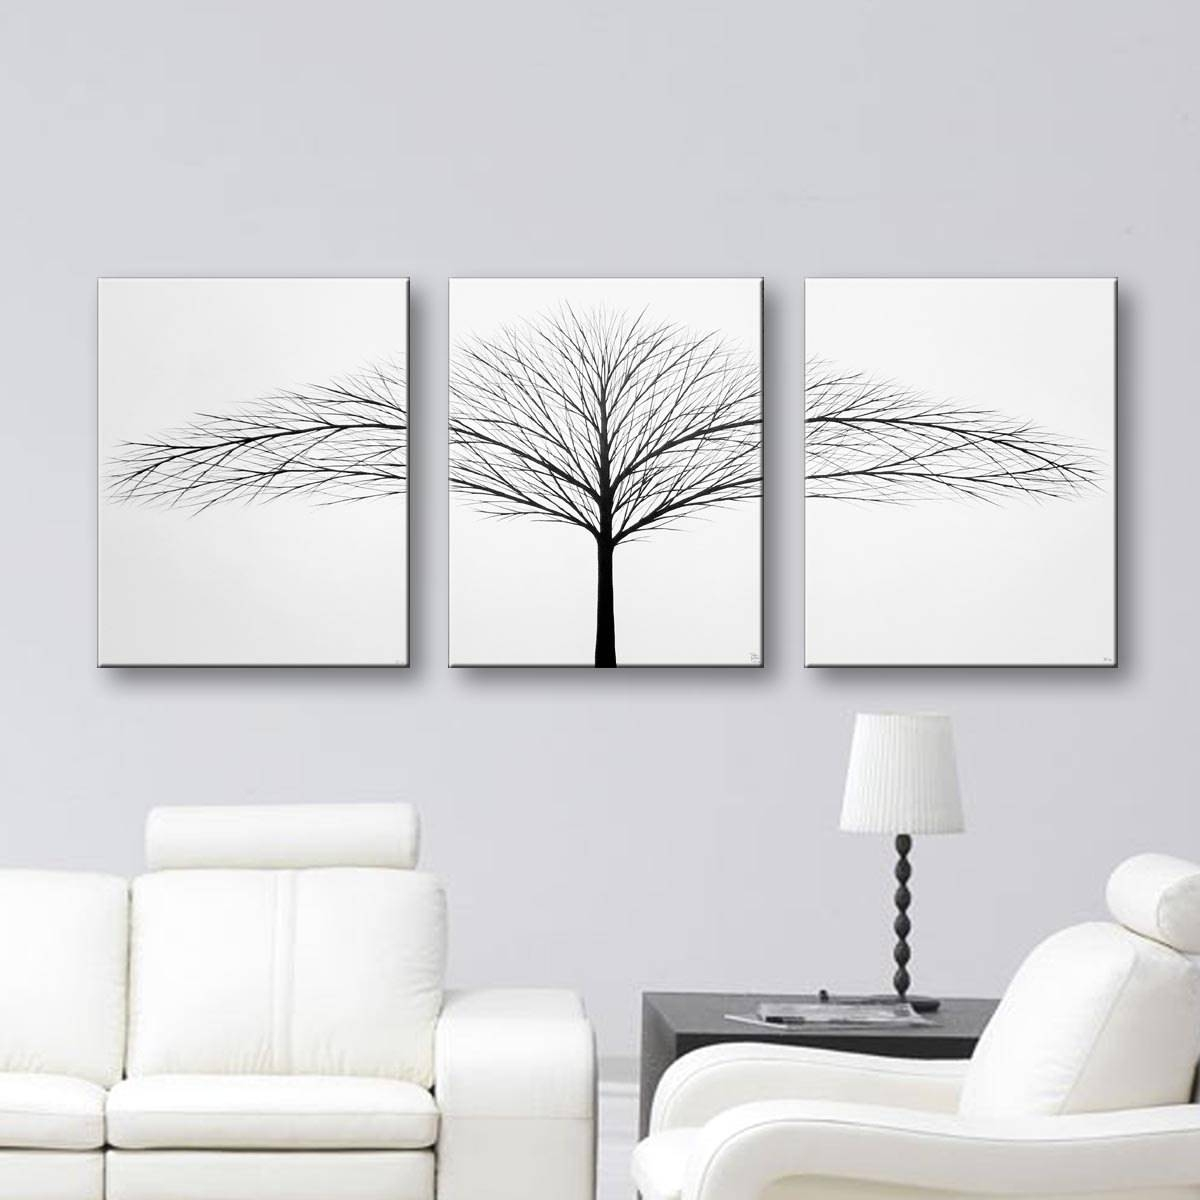 Black And White Paintings For Bedroom Bedroom Sets Black Modern Bedroom Black Bedroom Furniture Sets Pictures: Top 20 Of Large Black And White Wall Art